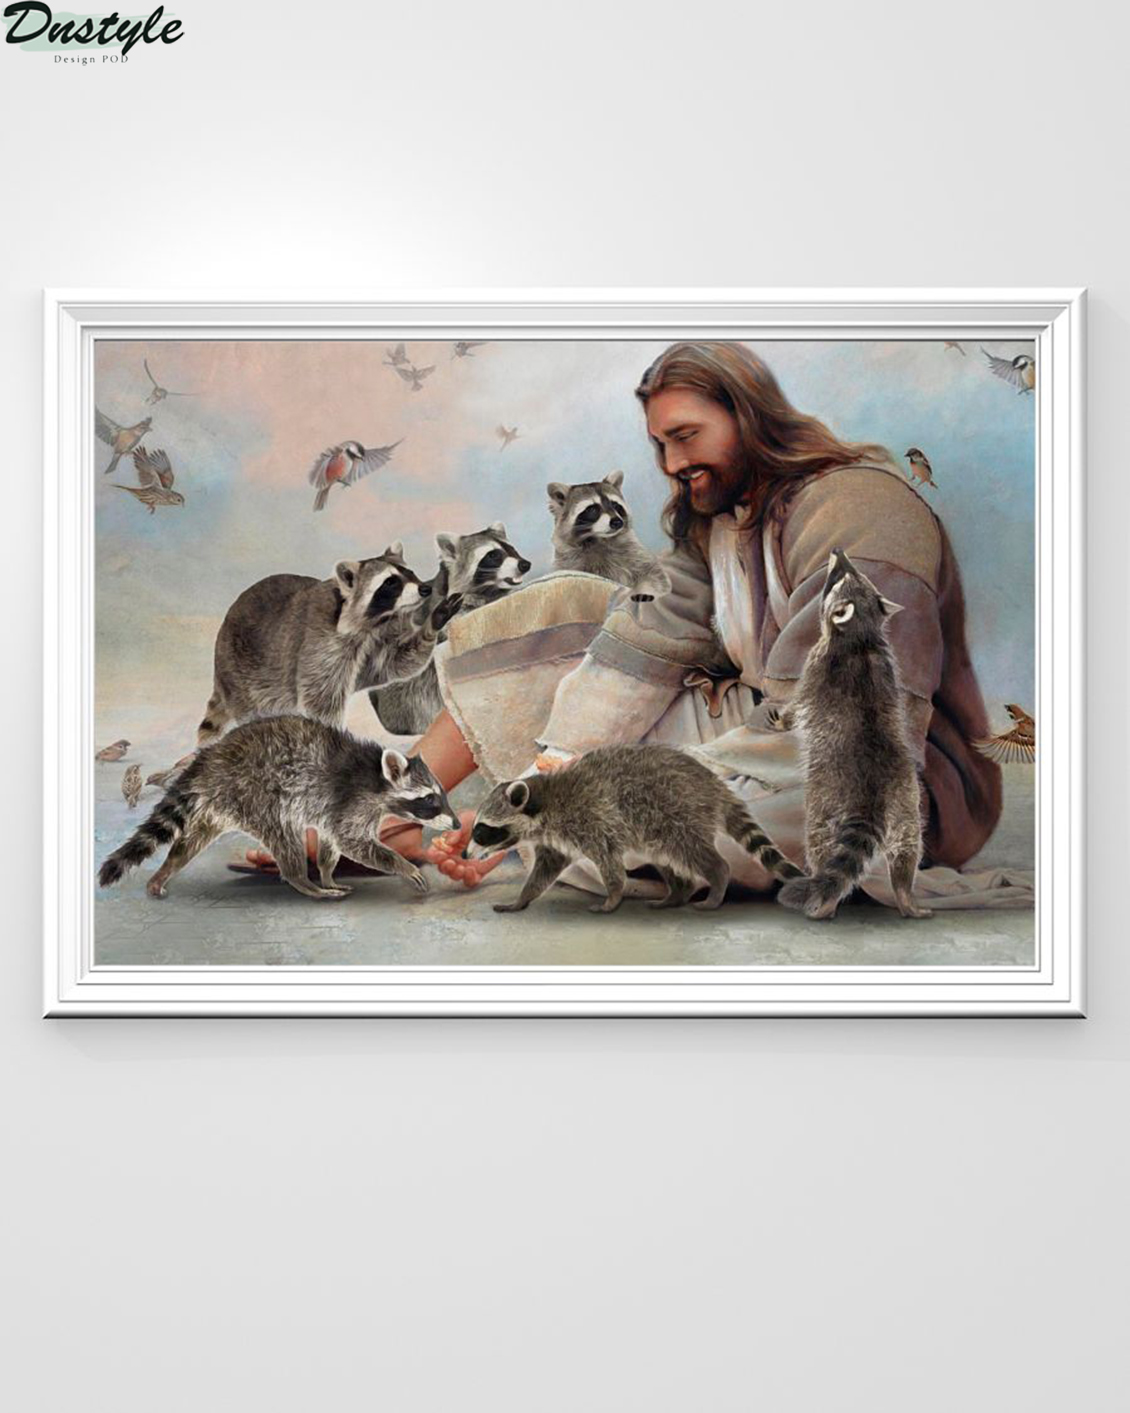 God surrounded by Raccoon angels poster A1